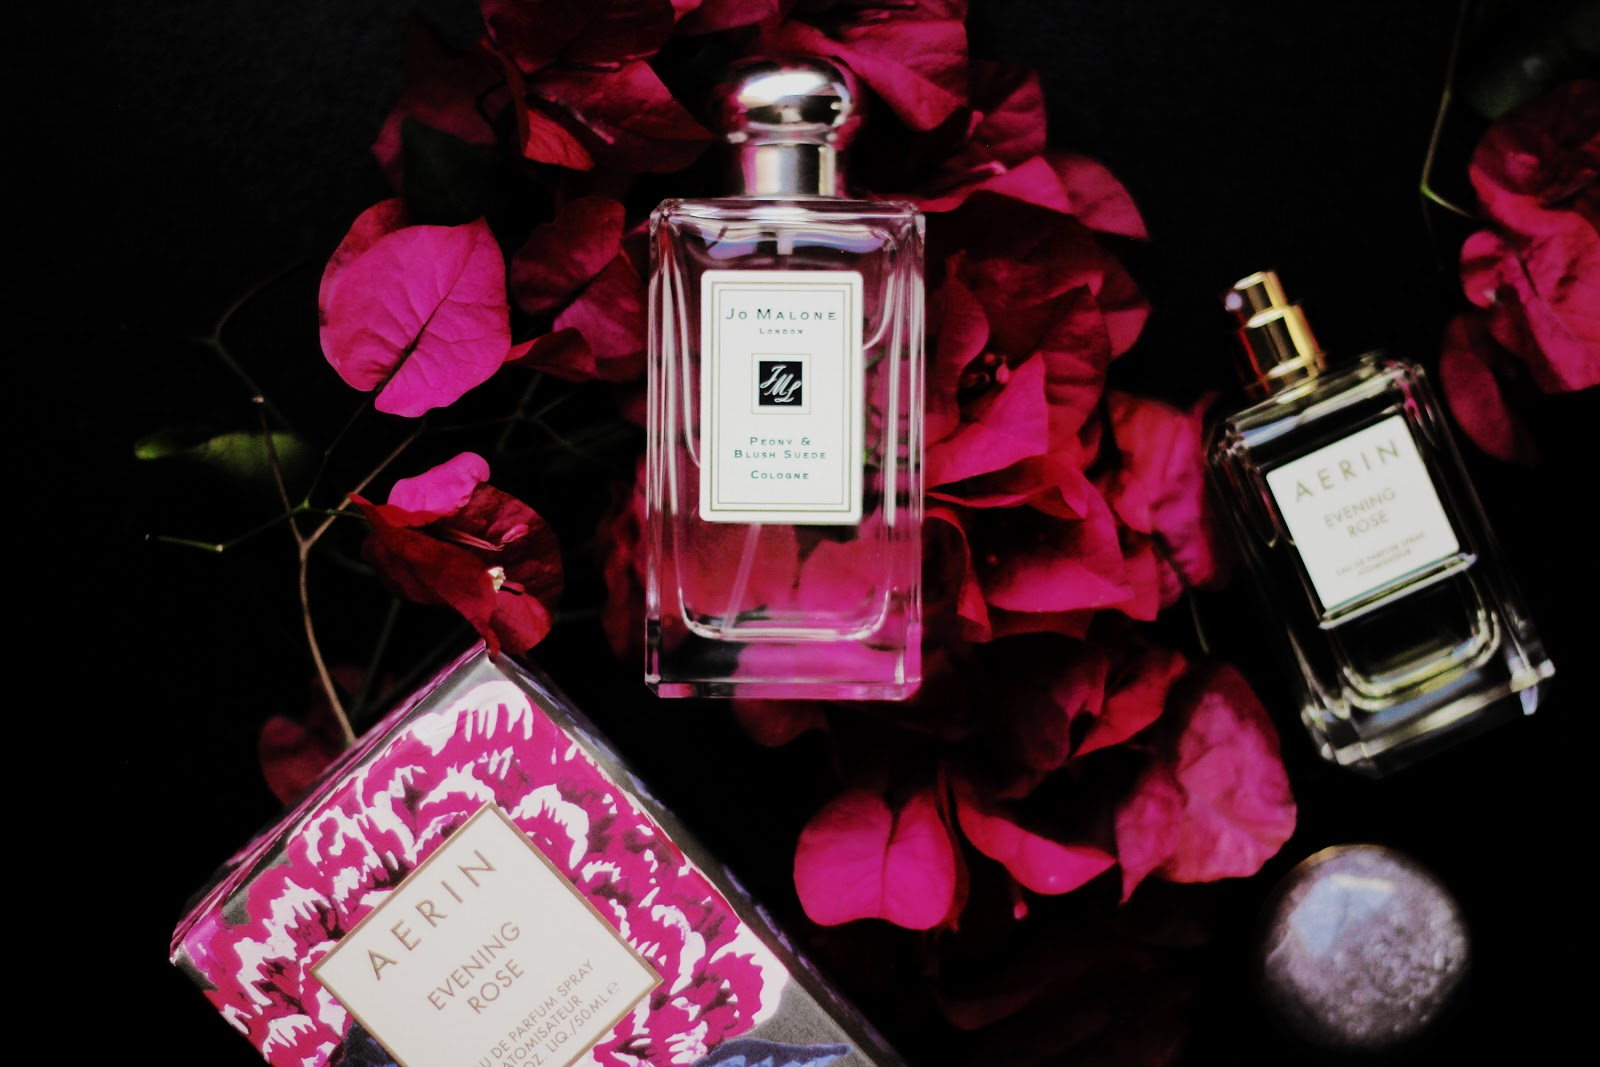 Jo Malone Peony Blush Suede Scent for Spring